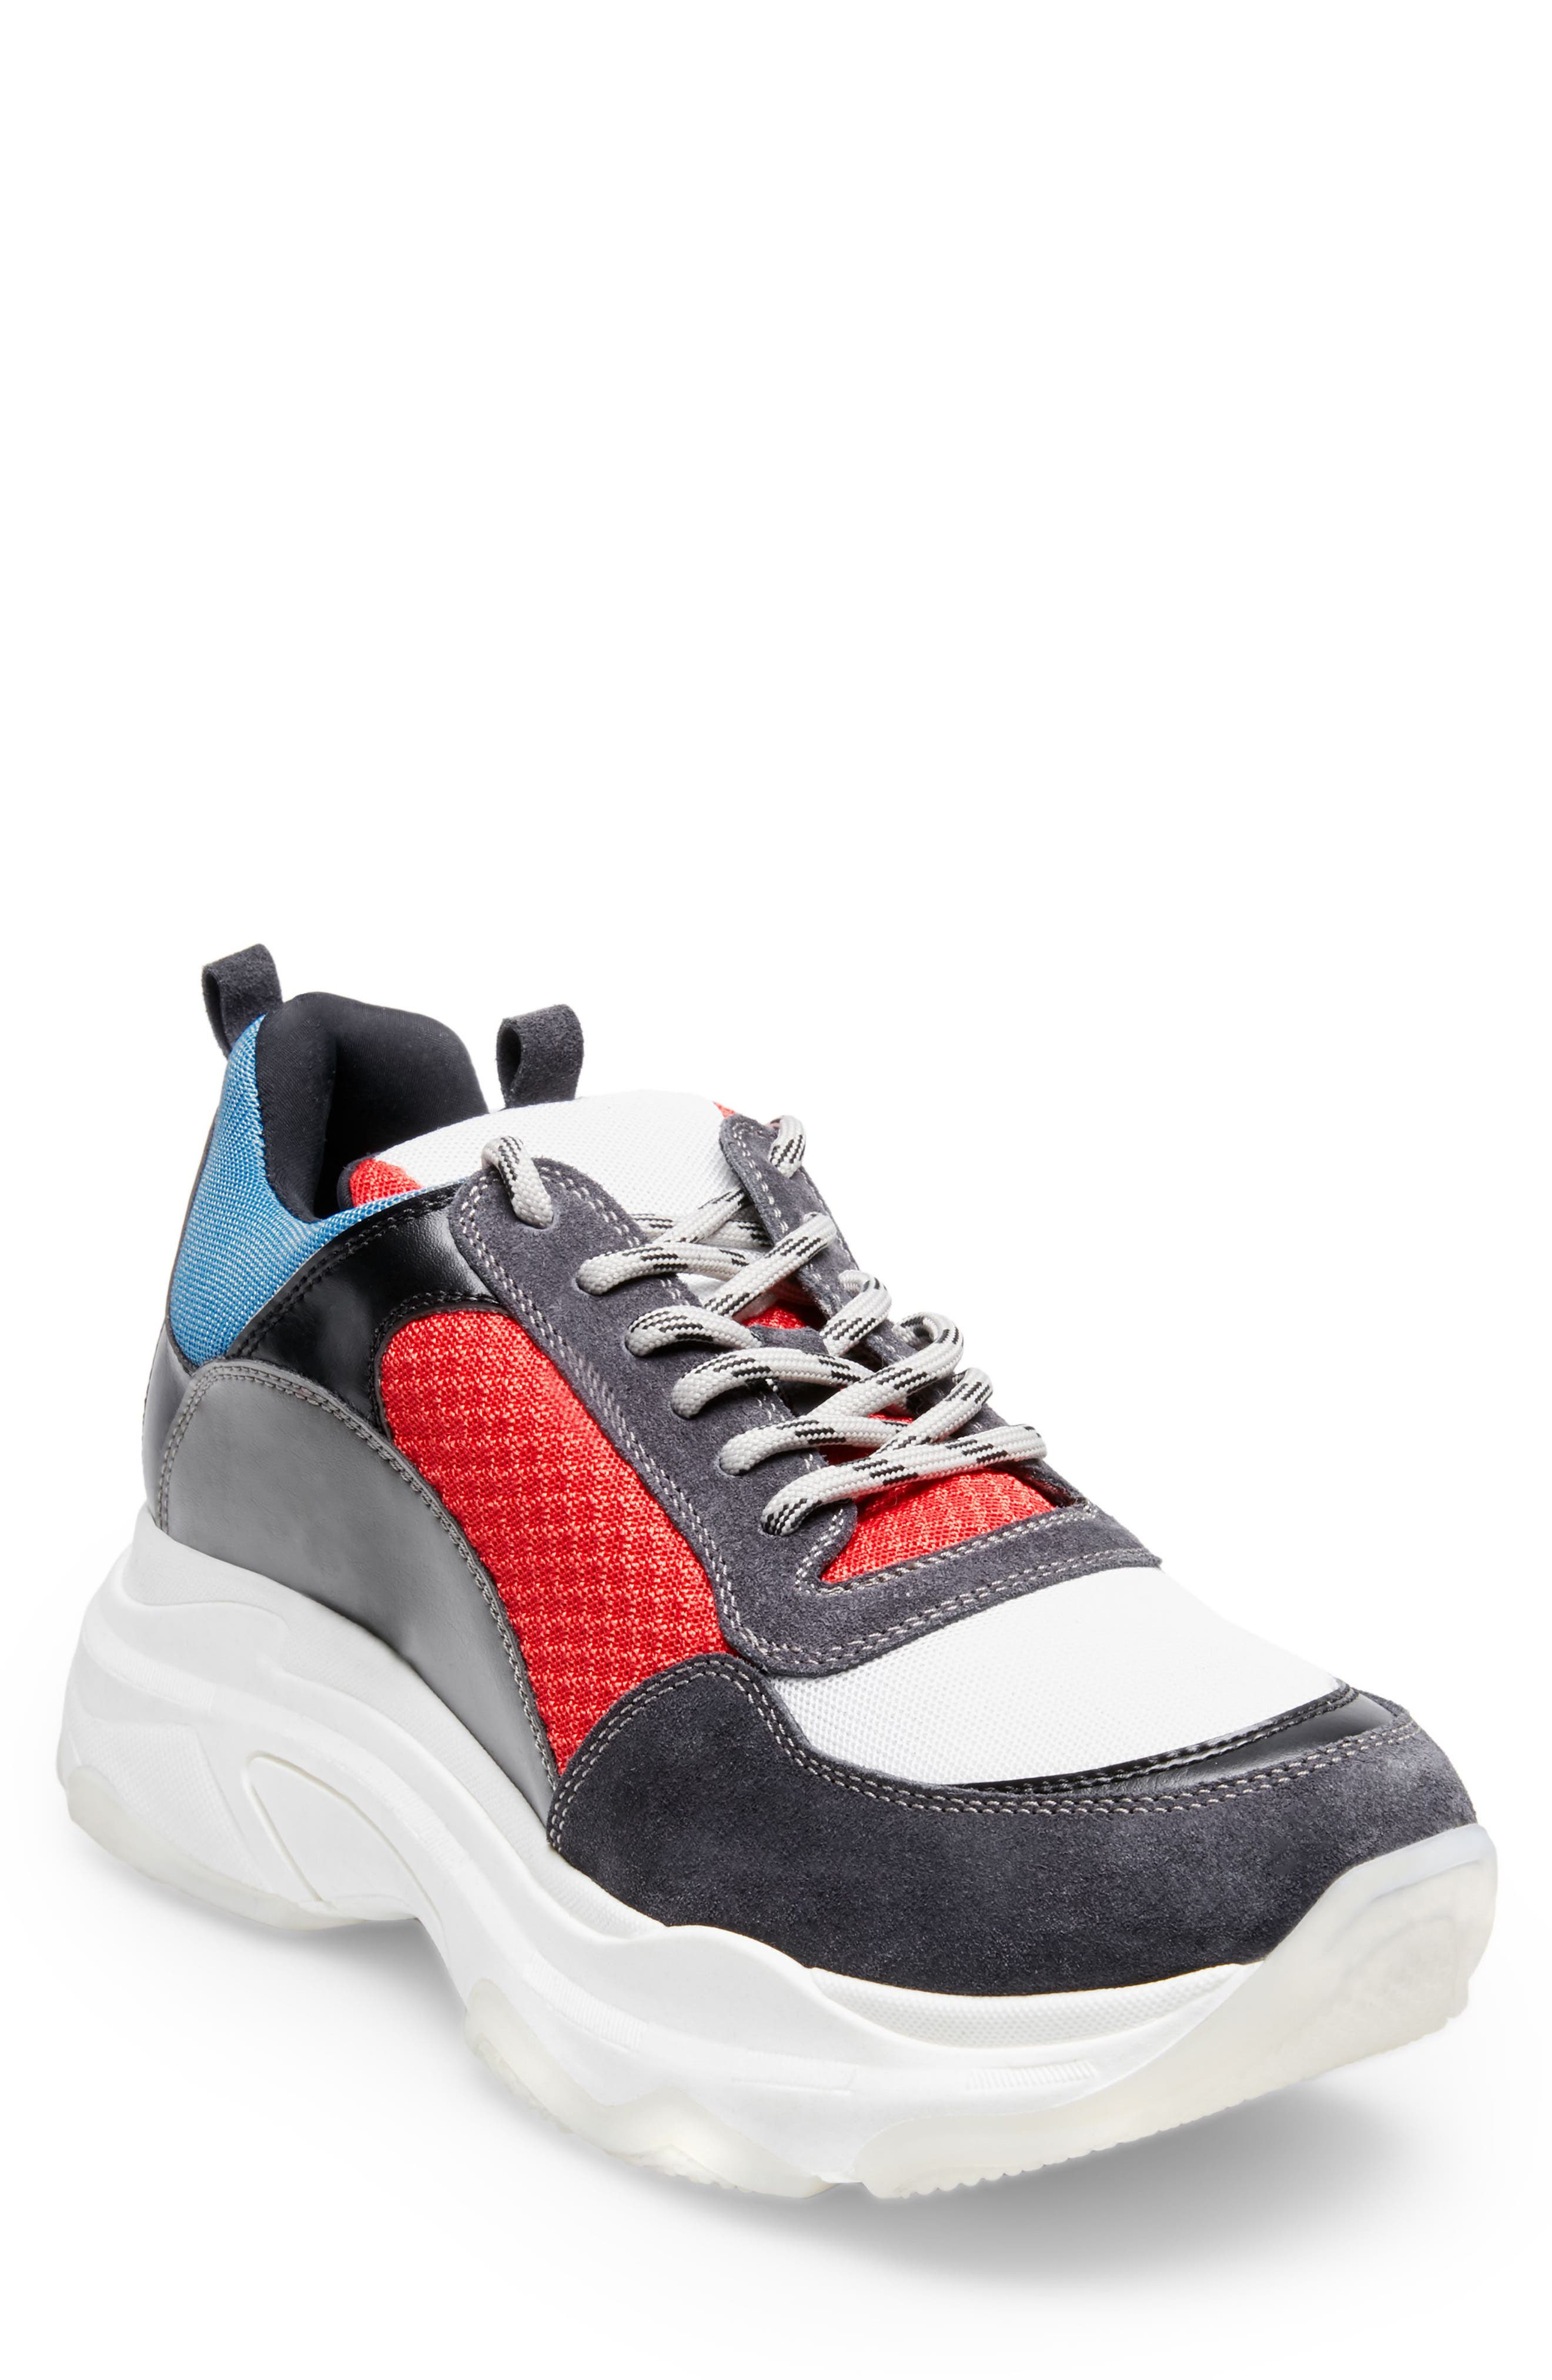 Russell Platform Sneaker,                         Main,                         color, MULTI LEATHER